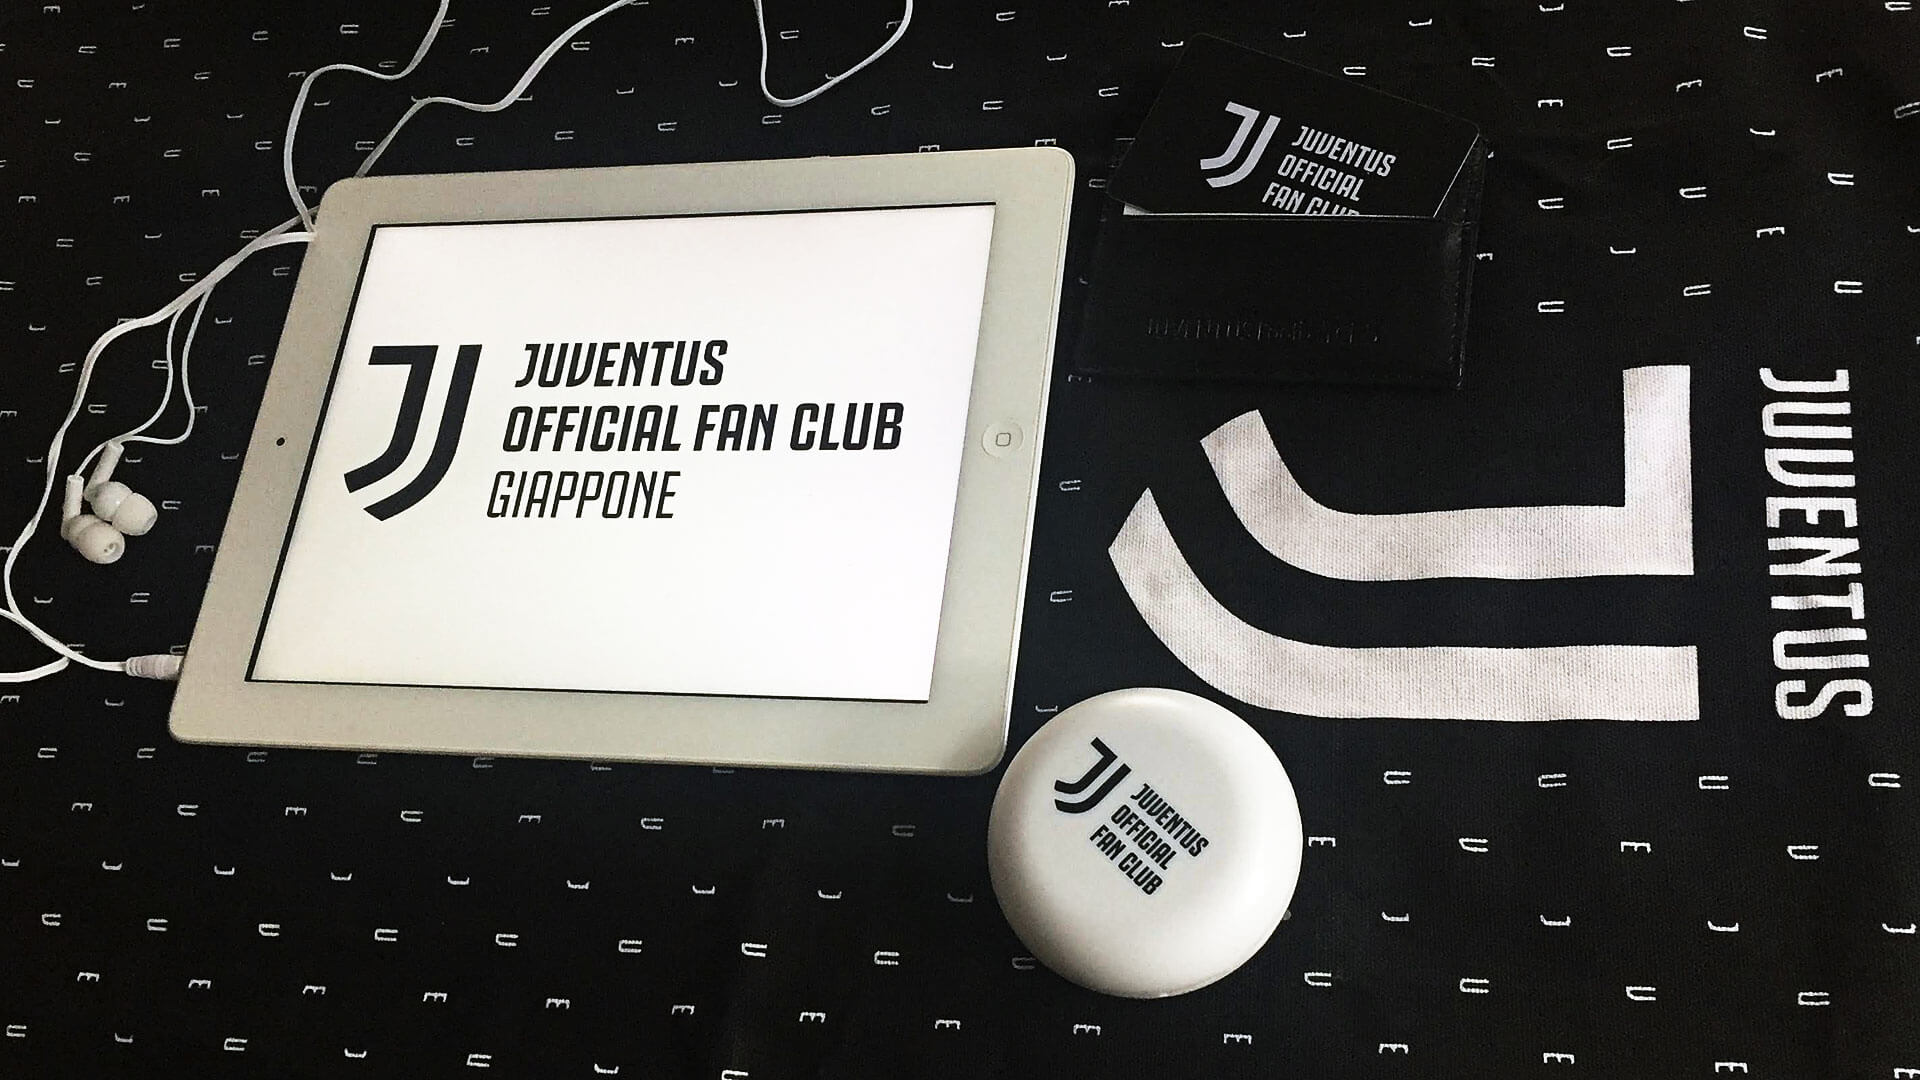 JUVENTUS OFFICIAL FAN CLUB Gadget 2018/19